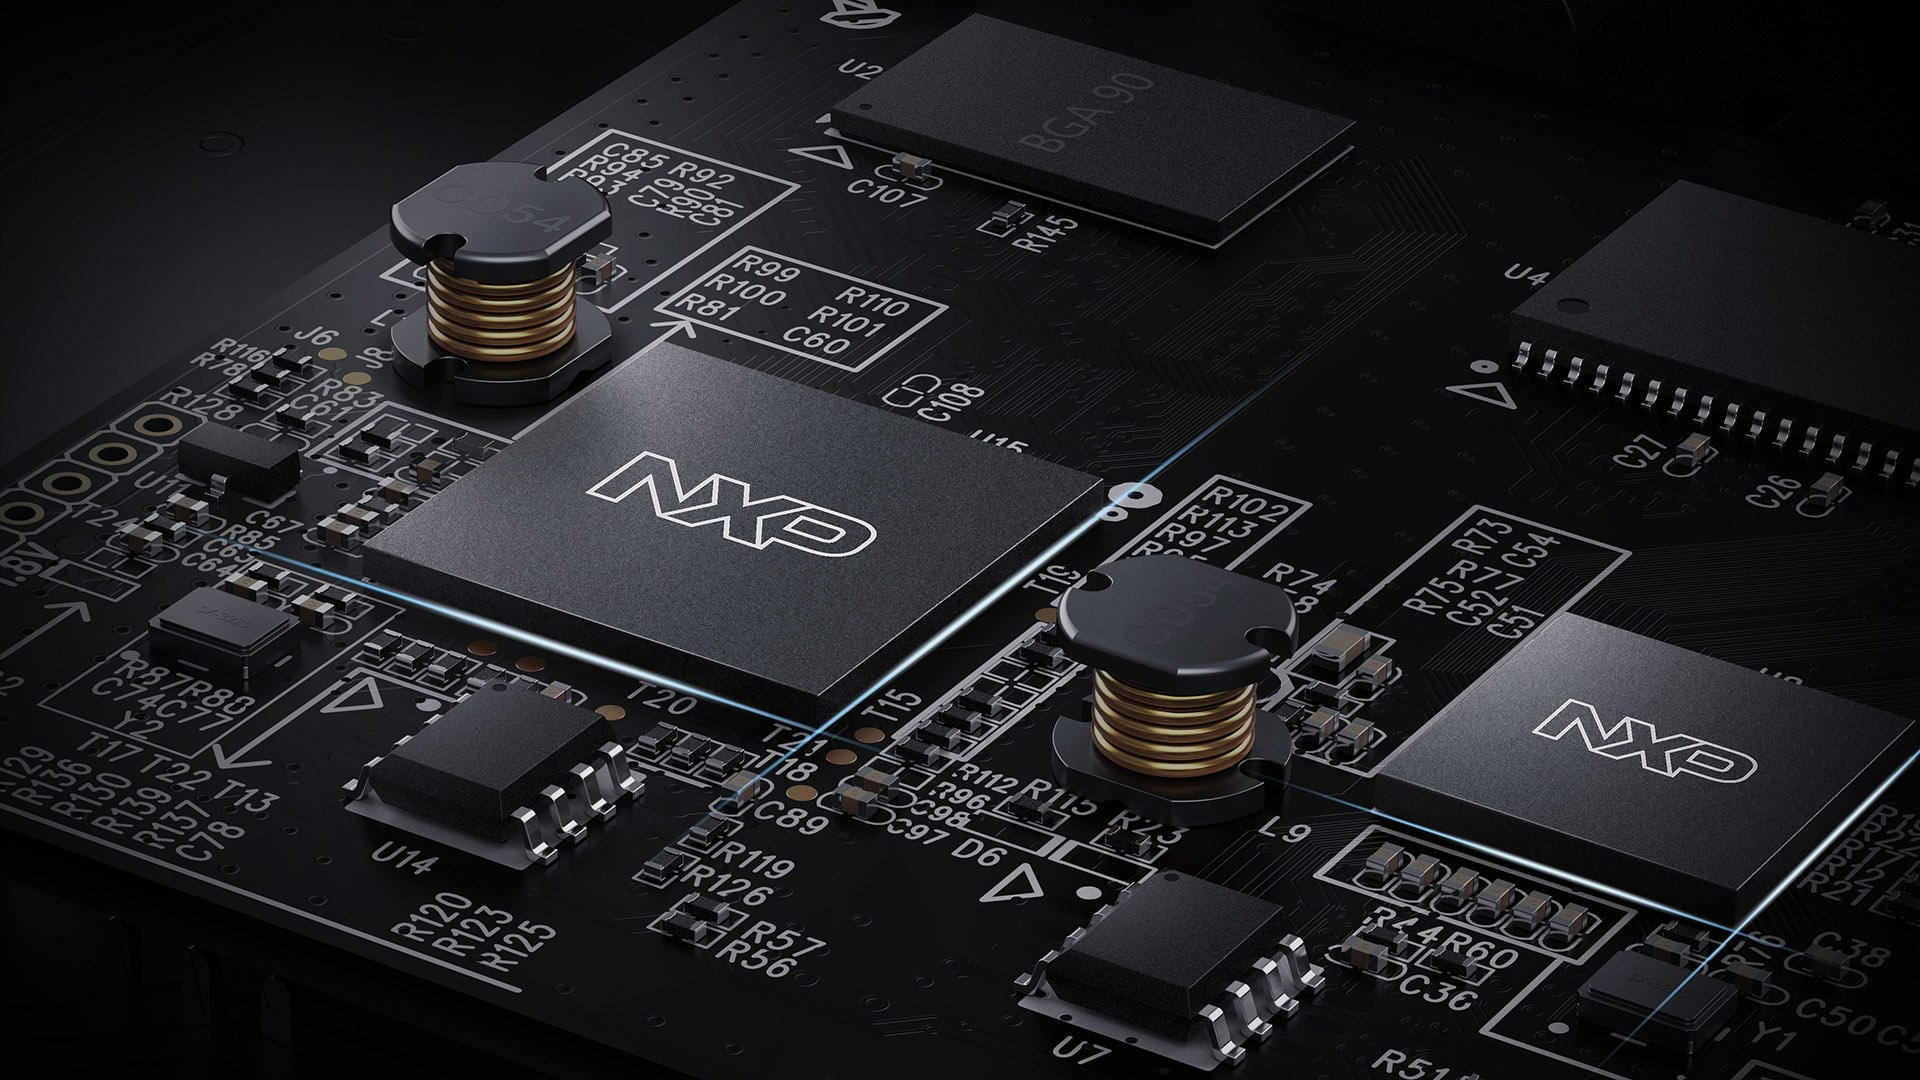 NUX MG-30 has two NXP RT processors